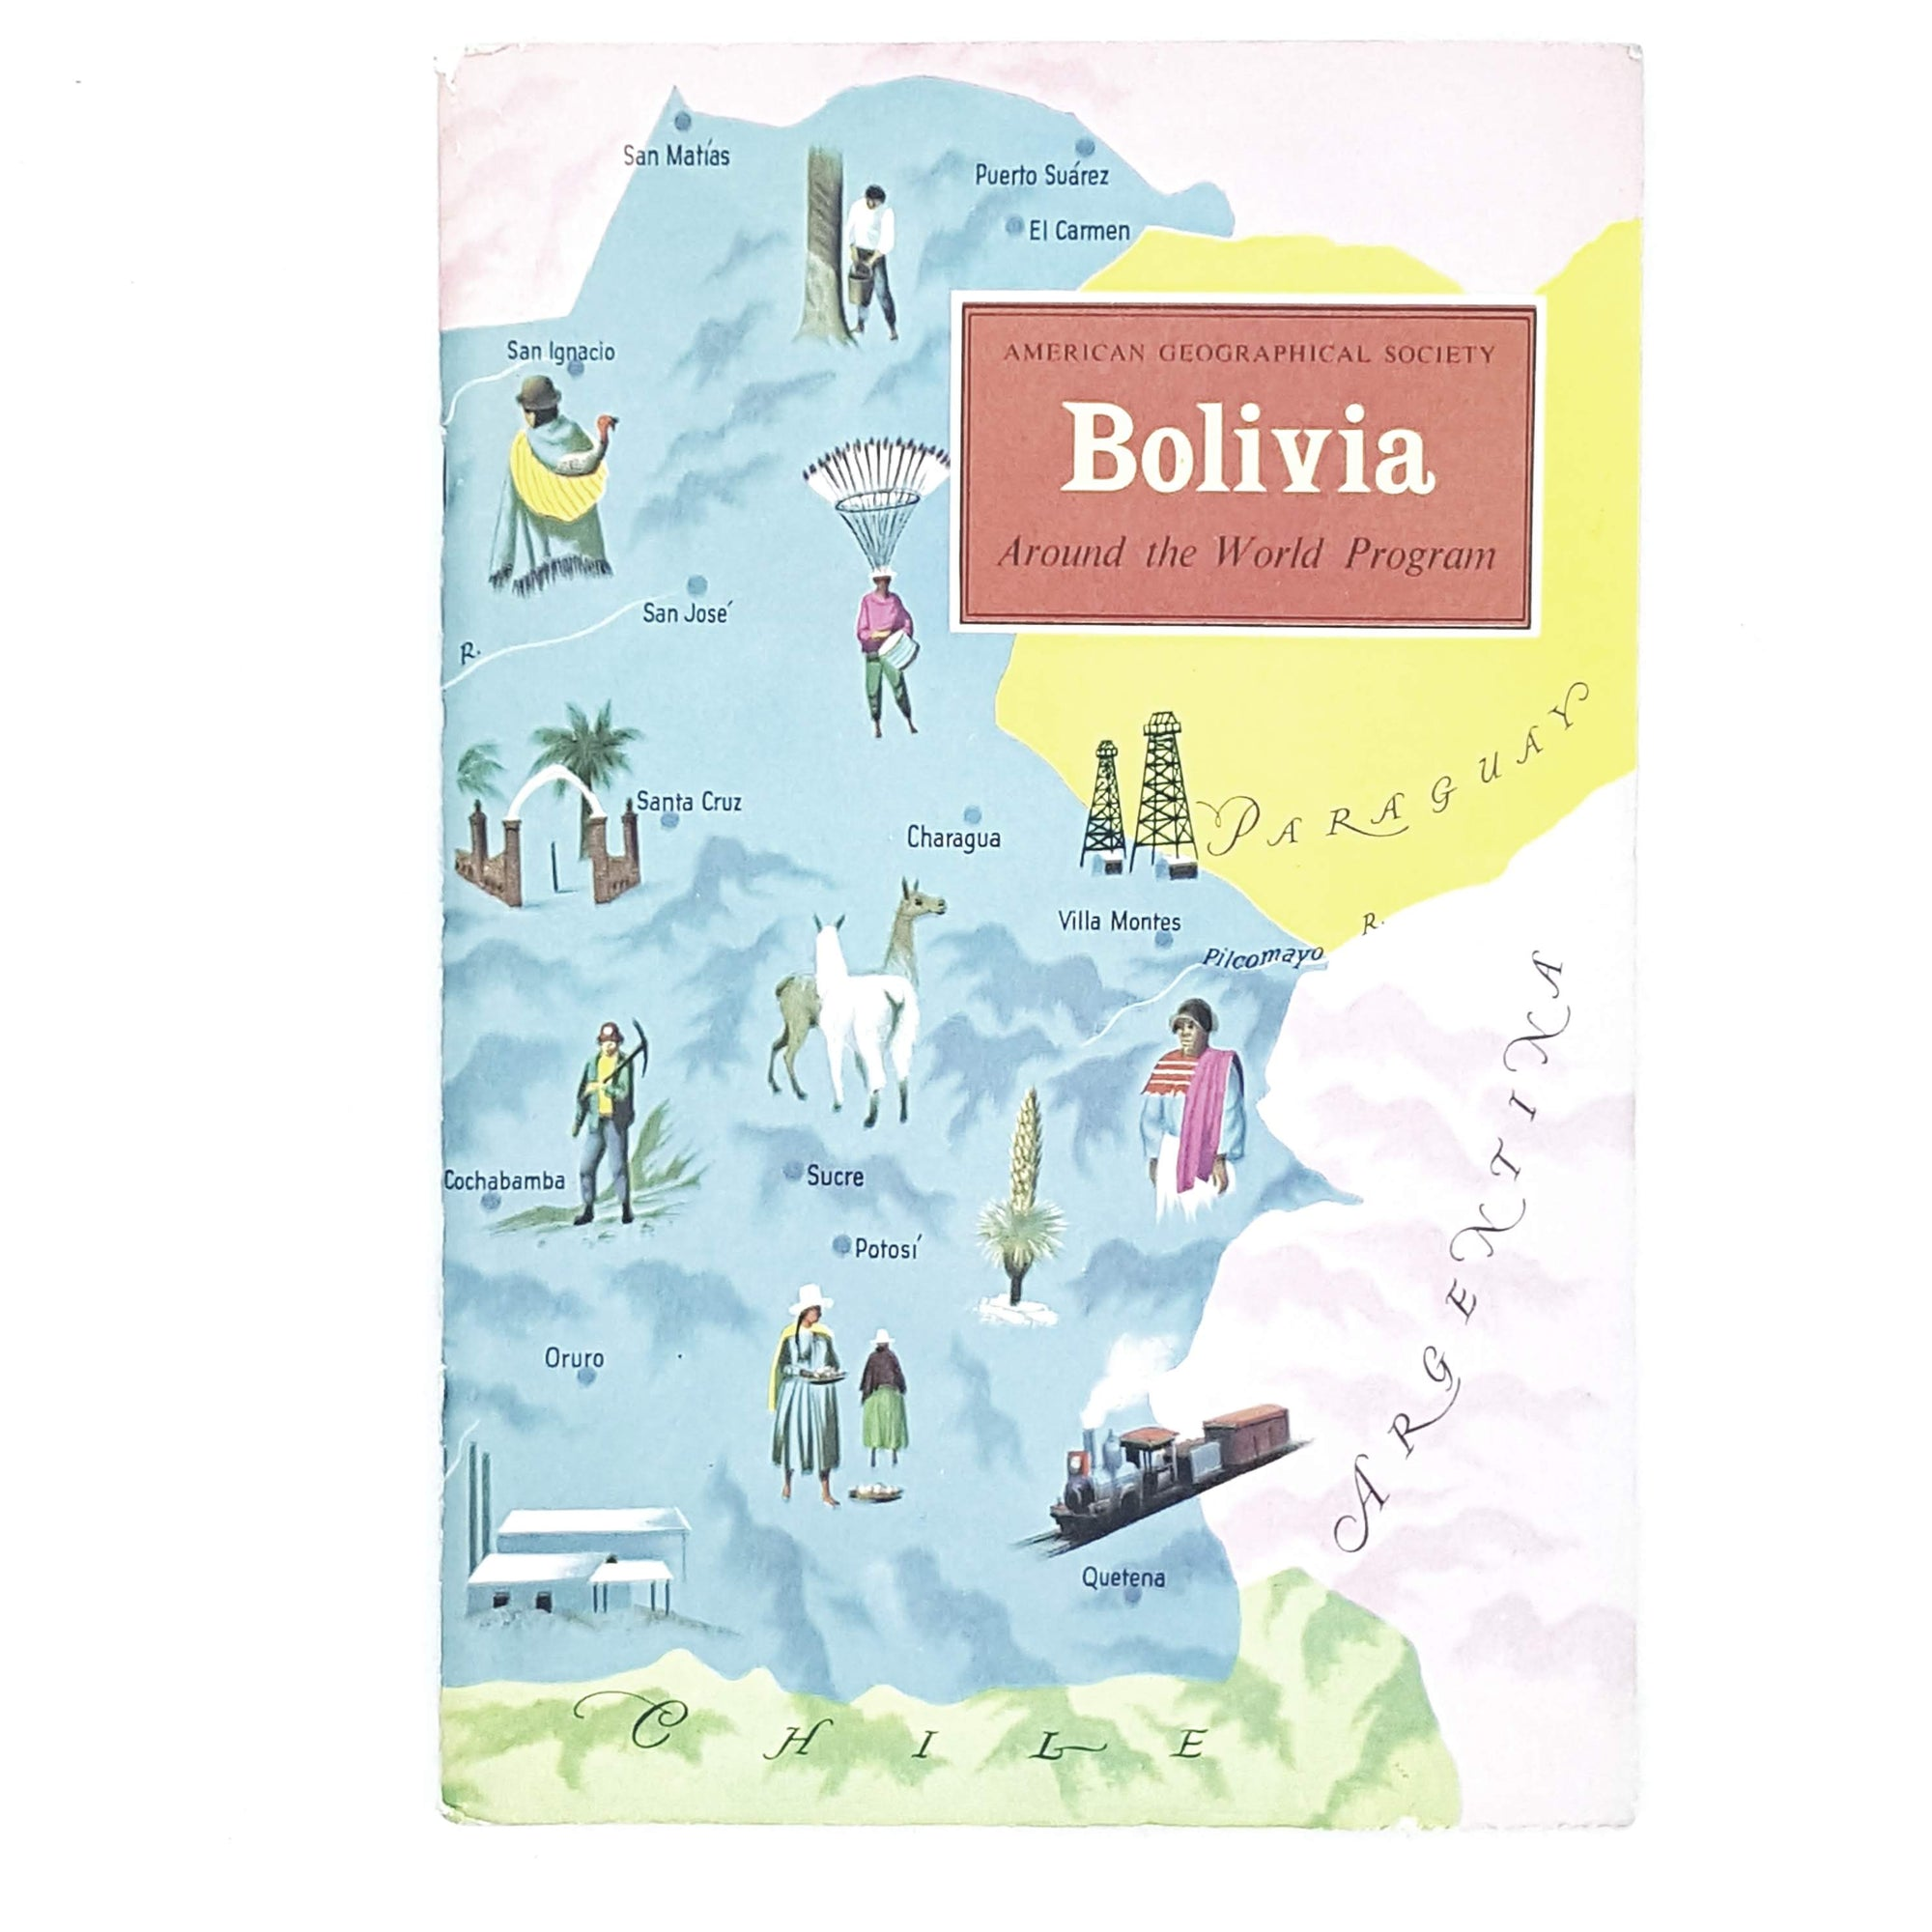 Vintage Travel: Bolivia by Earl Parker Hanson 1965